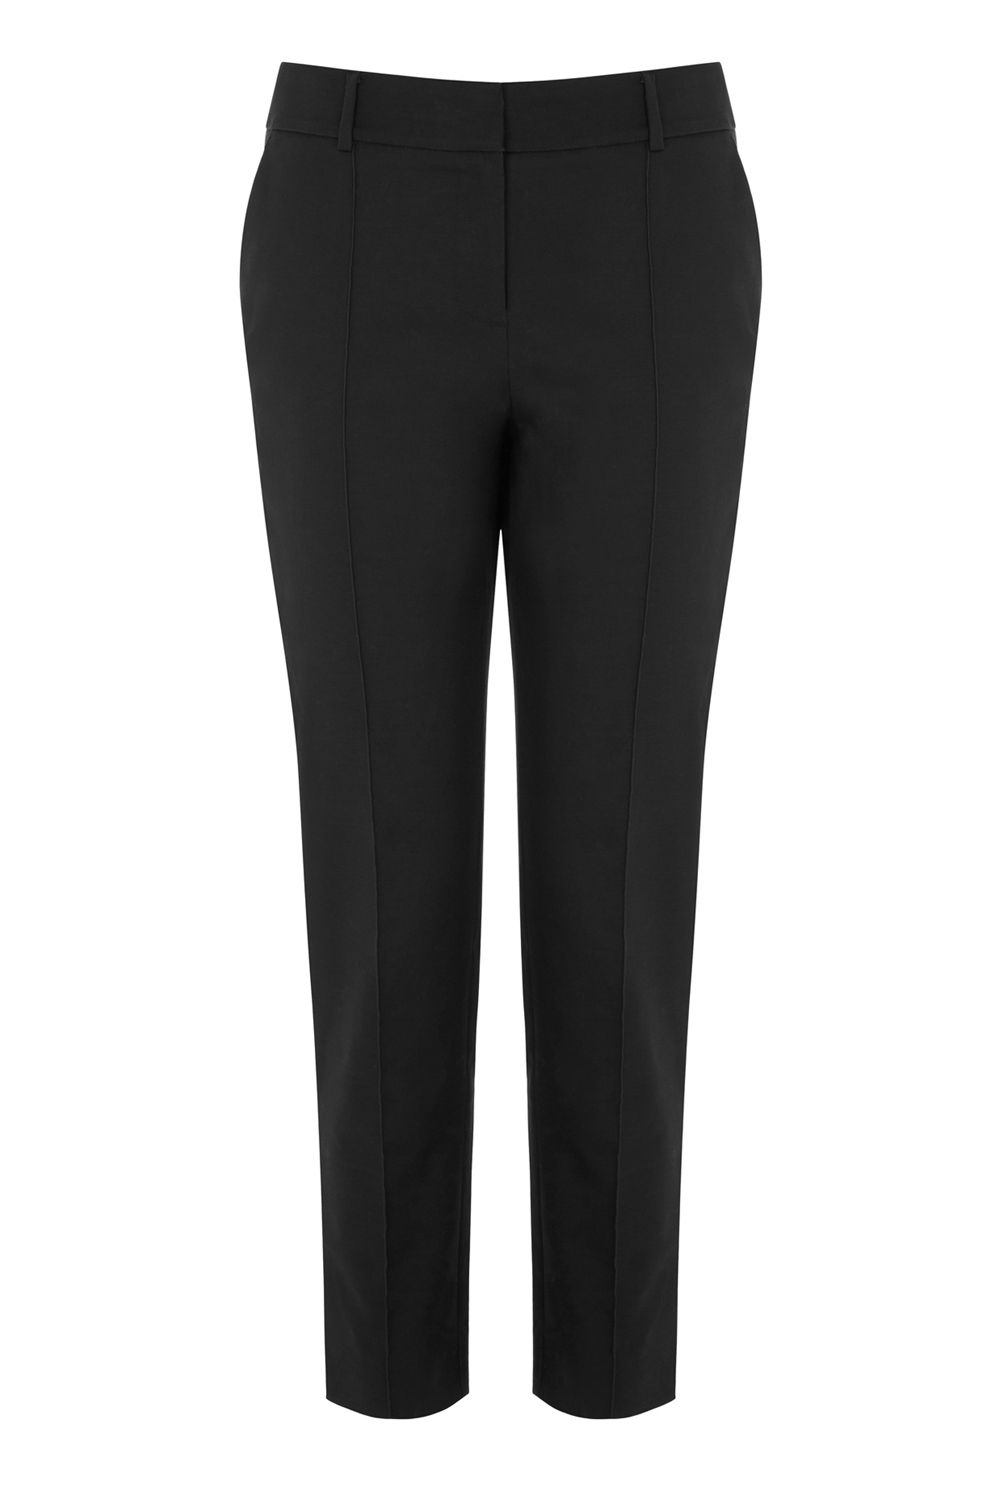 Warehouse Compact Cotton Trouser, Black